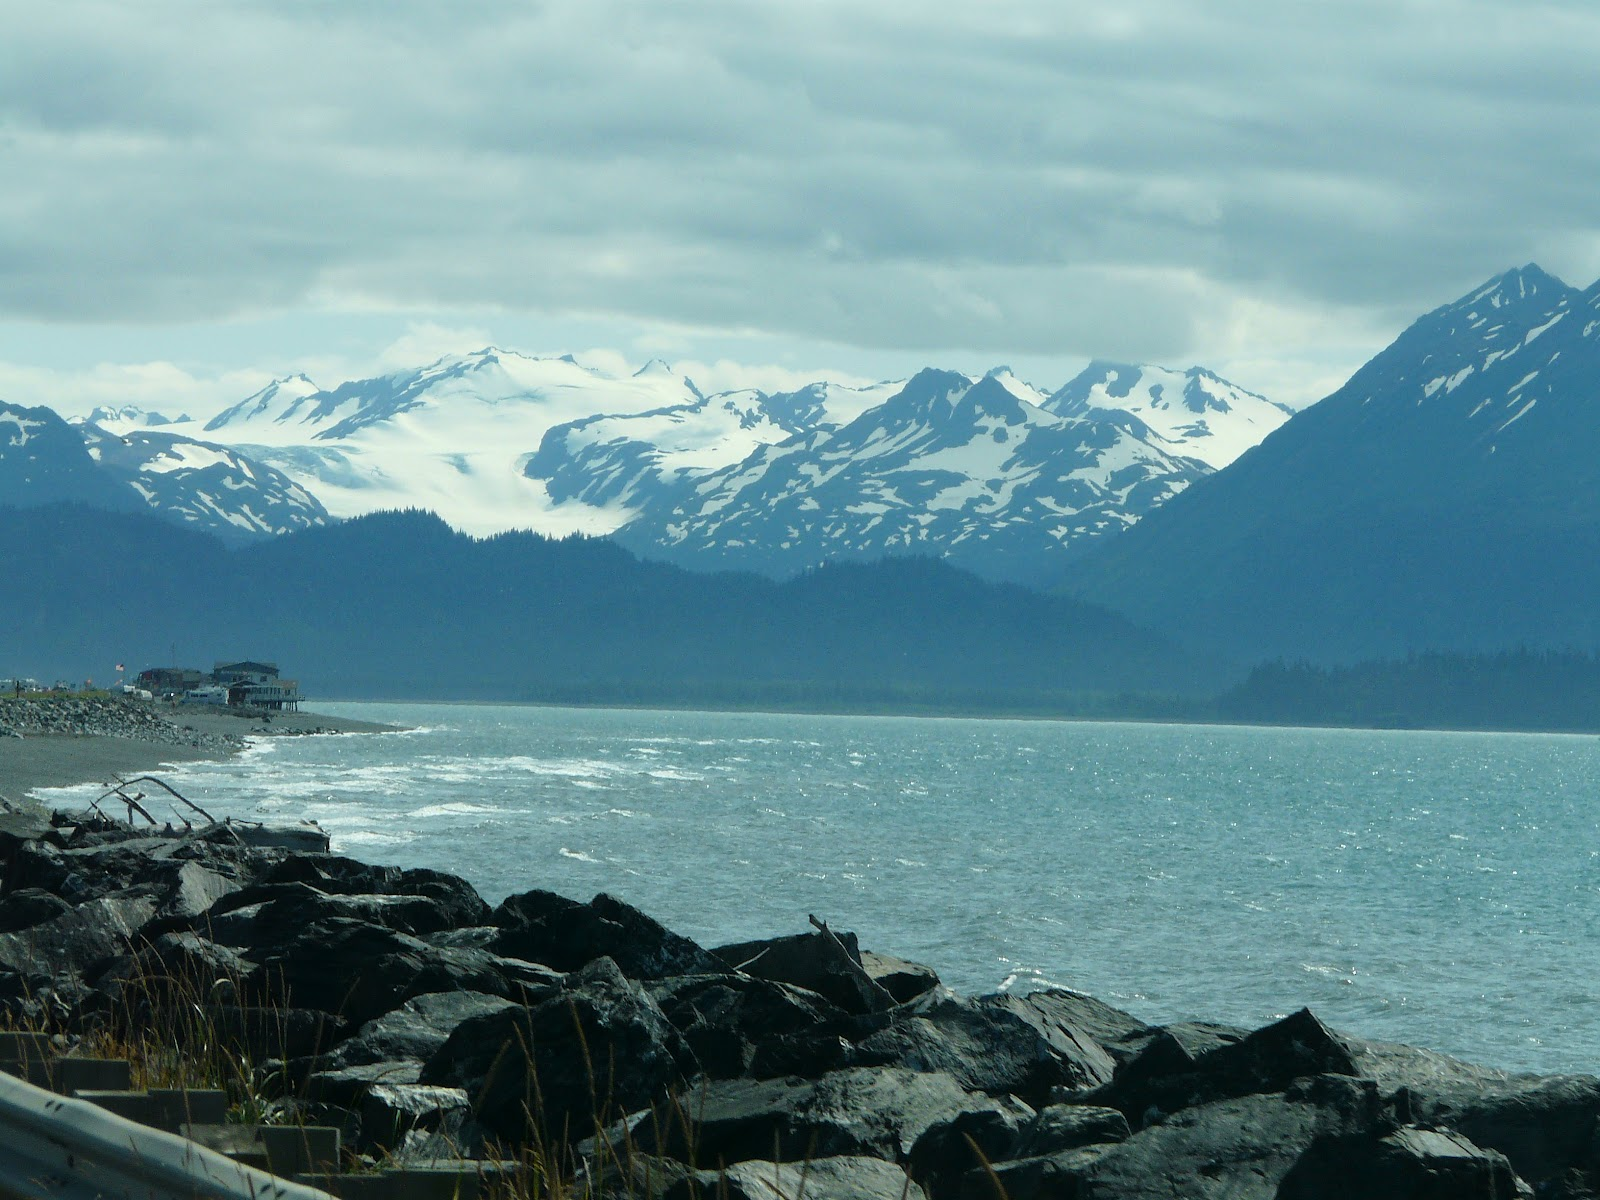 homer alaska dating 54, homer nativeamerican men in alaska, united states looking for a: woman aged 18 to 99 i am alaska native from the southwest coast just moved to soldotna because i.